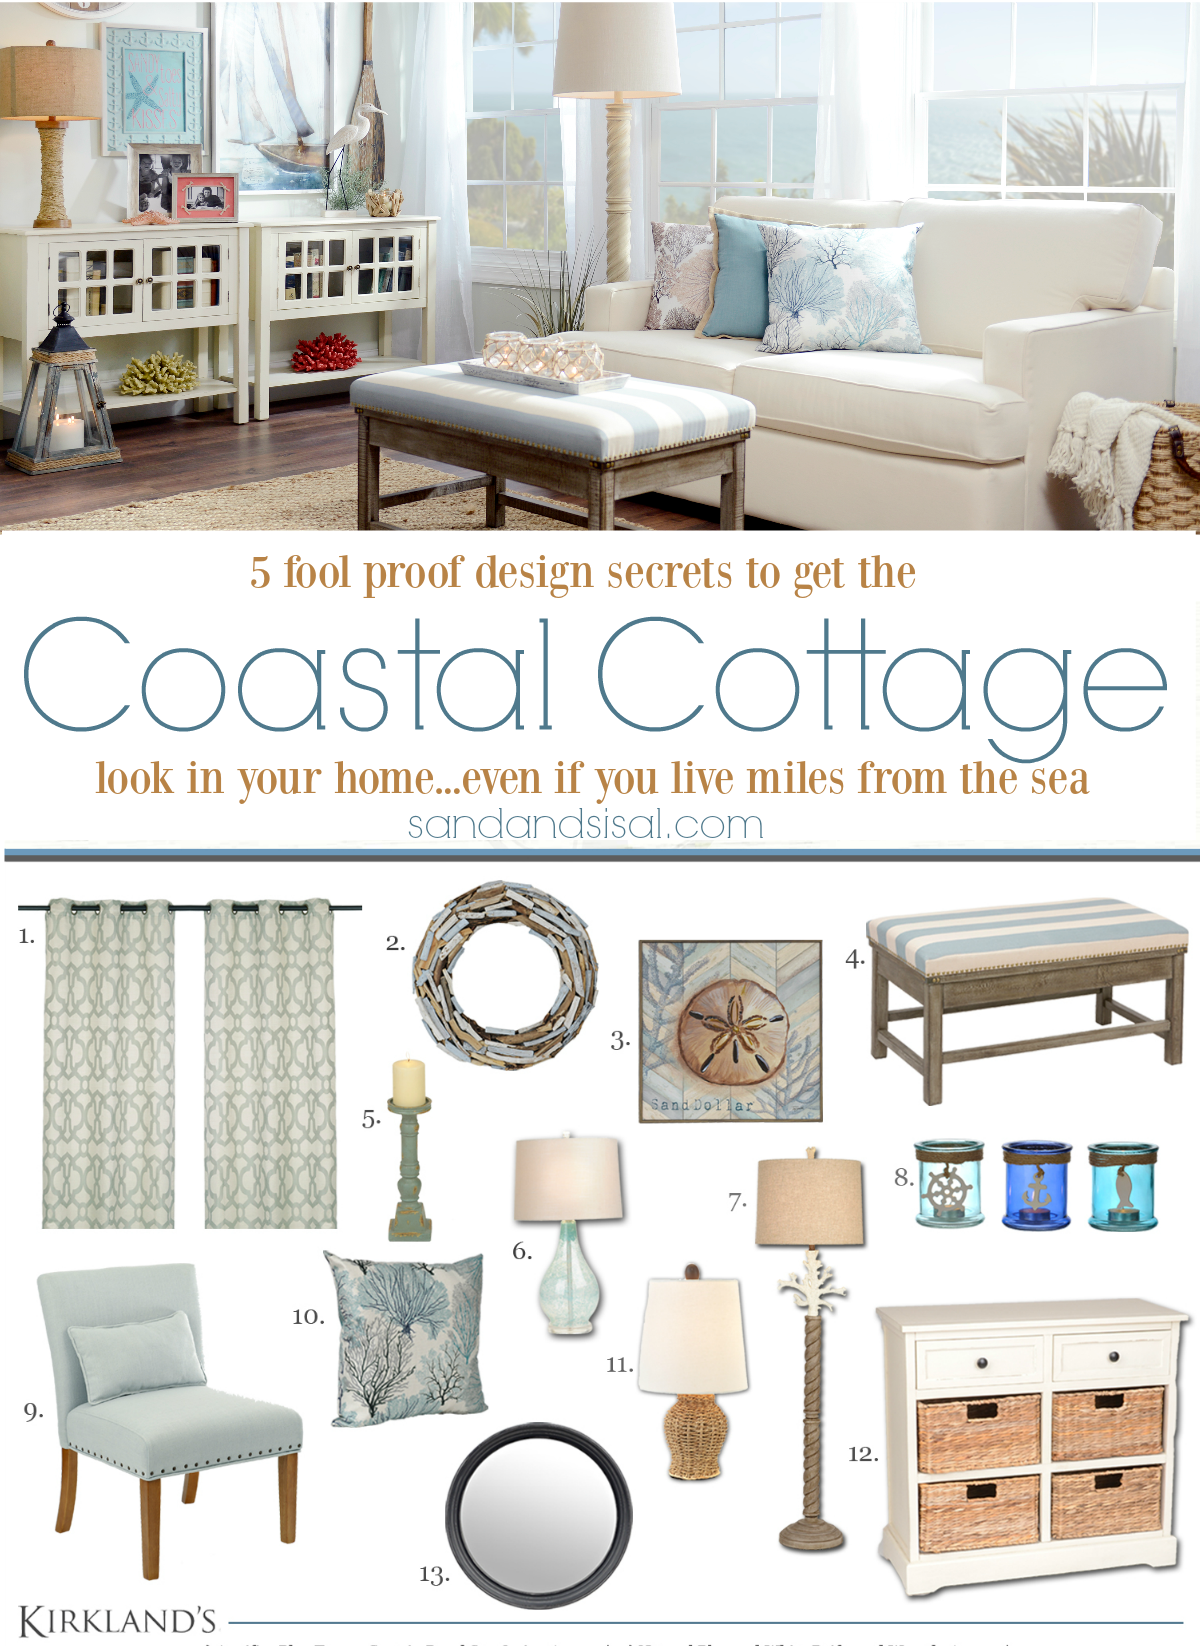 Get these 5 easy and fool proof design secrets to get the Coastal Cottage look in your home, even if you live miles from the sea. Bring a bit of the shore inside!